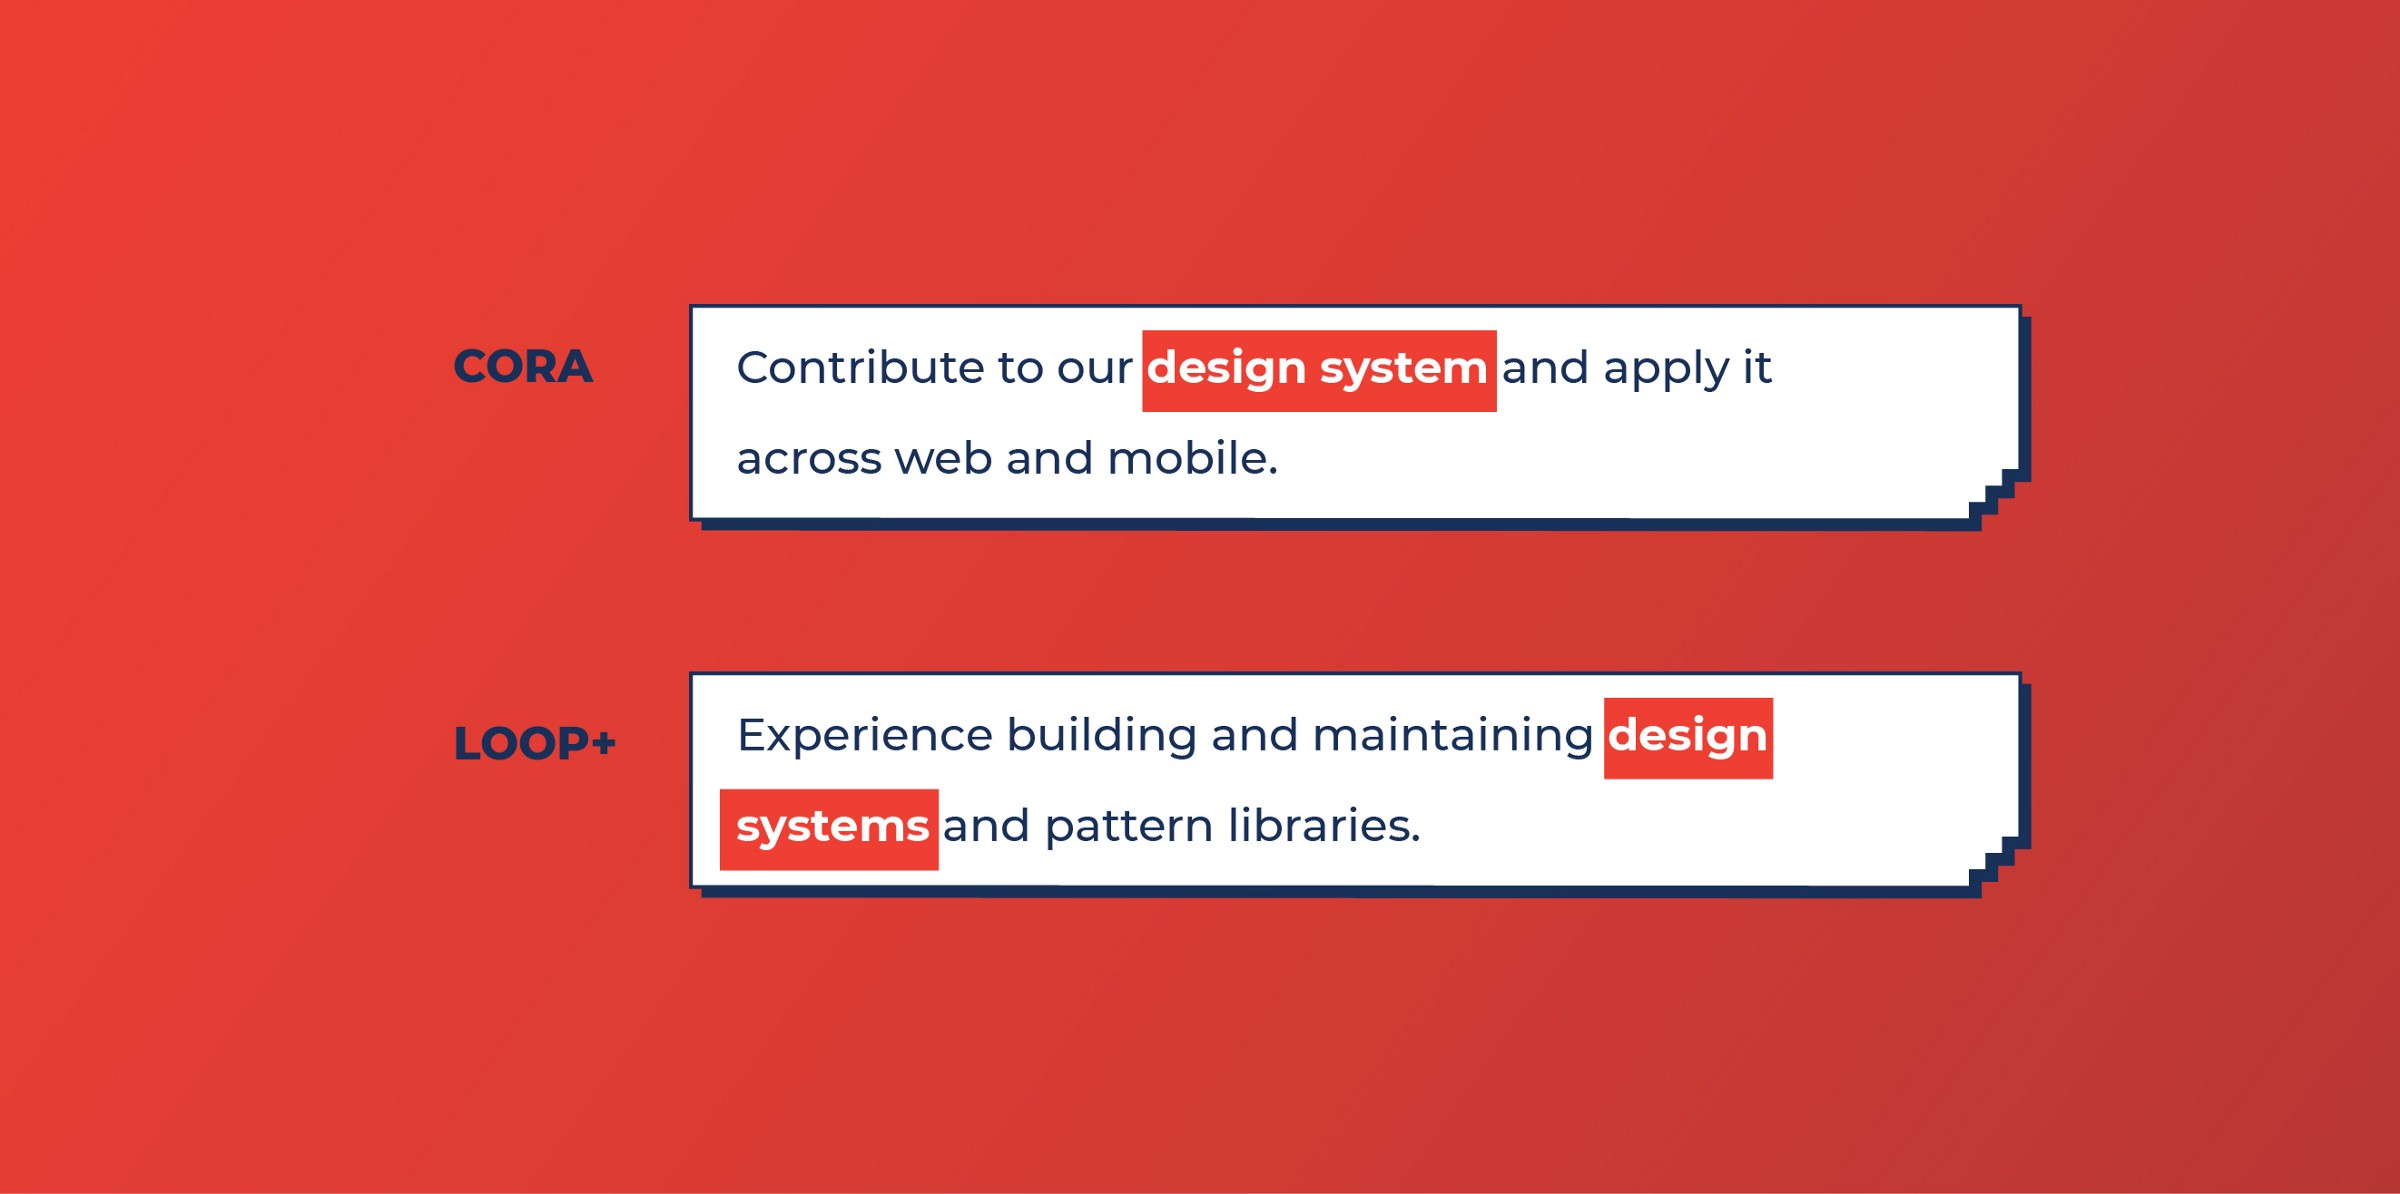 Cora and Loop+ look for Design Systems work from Product designers